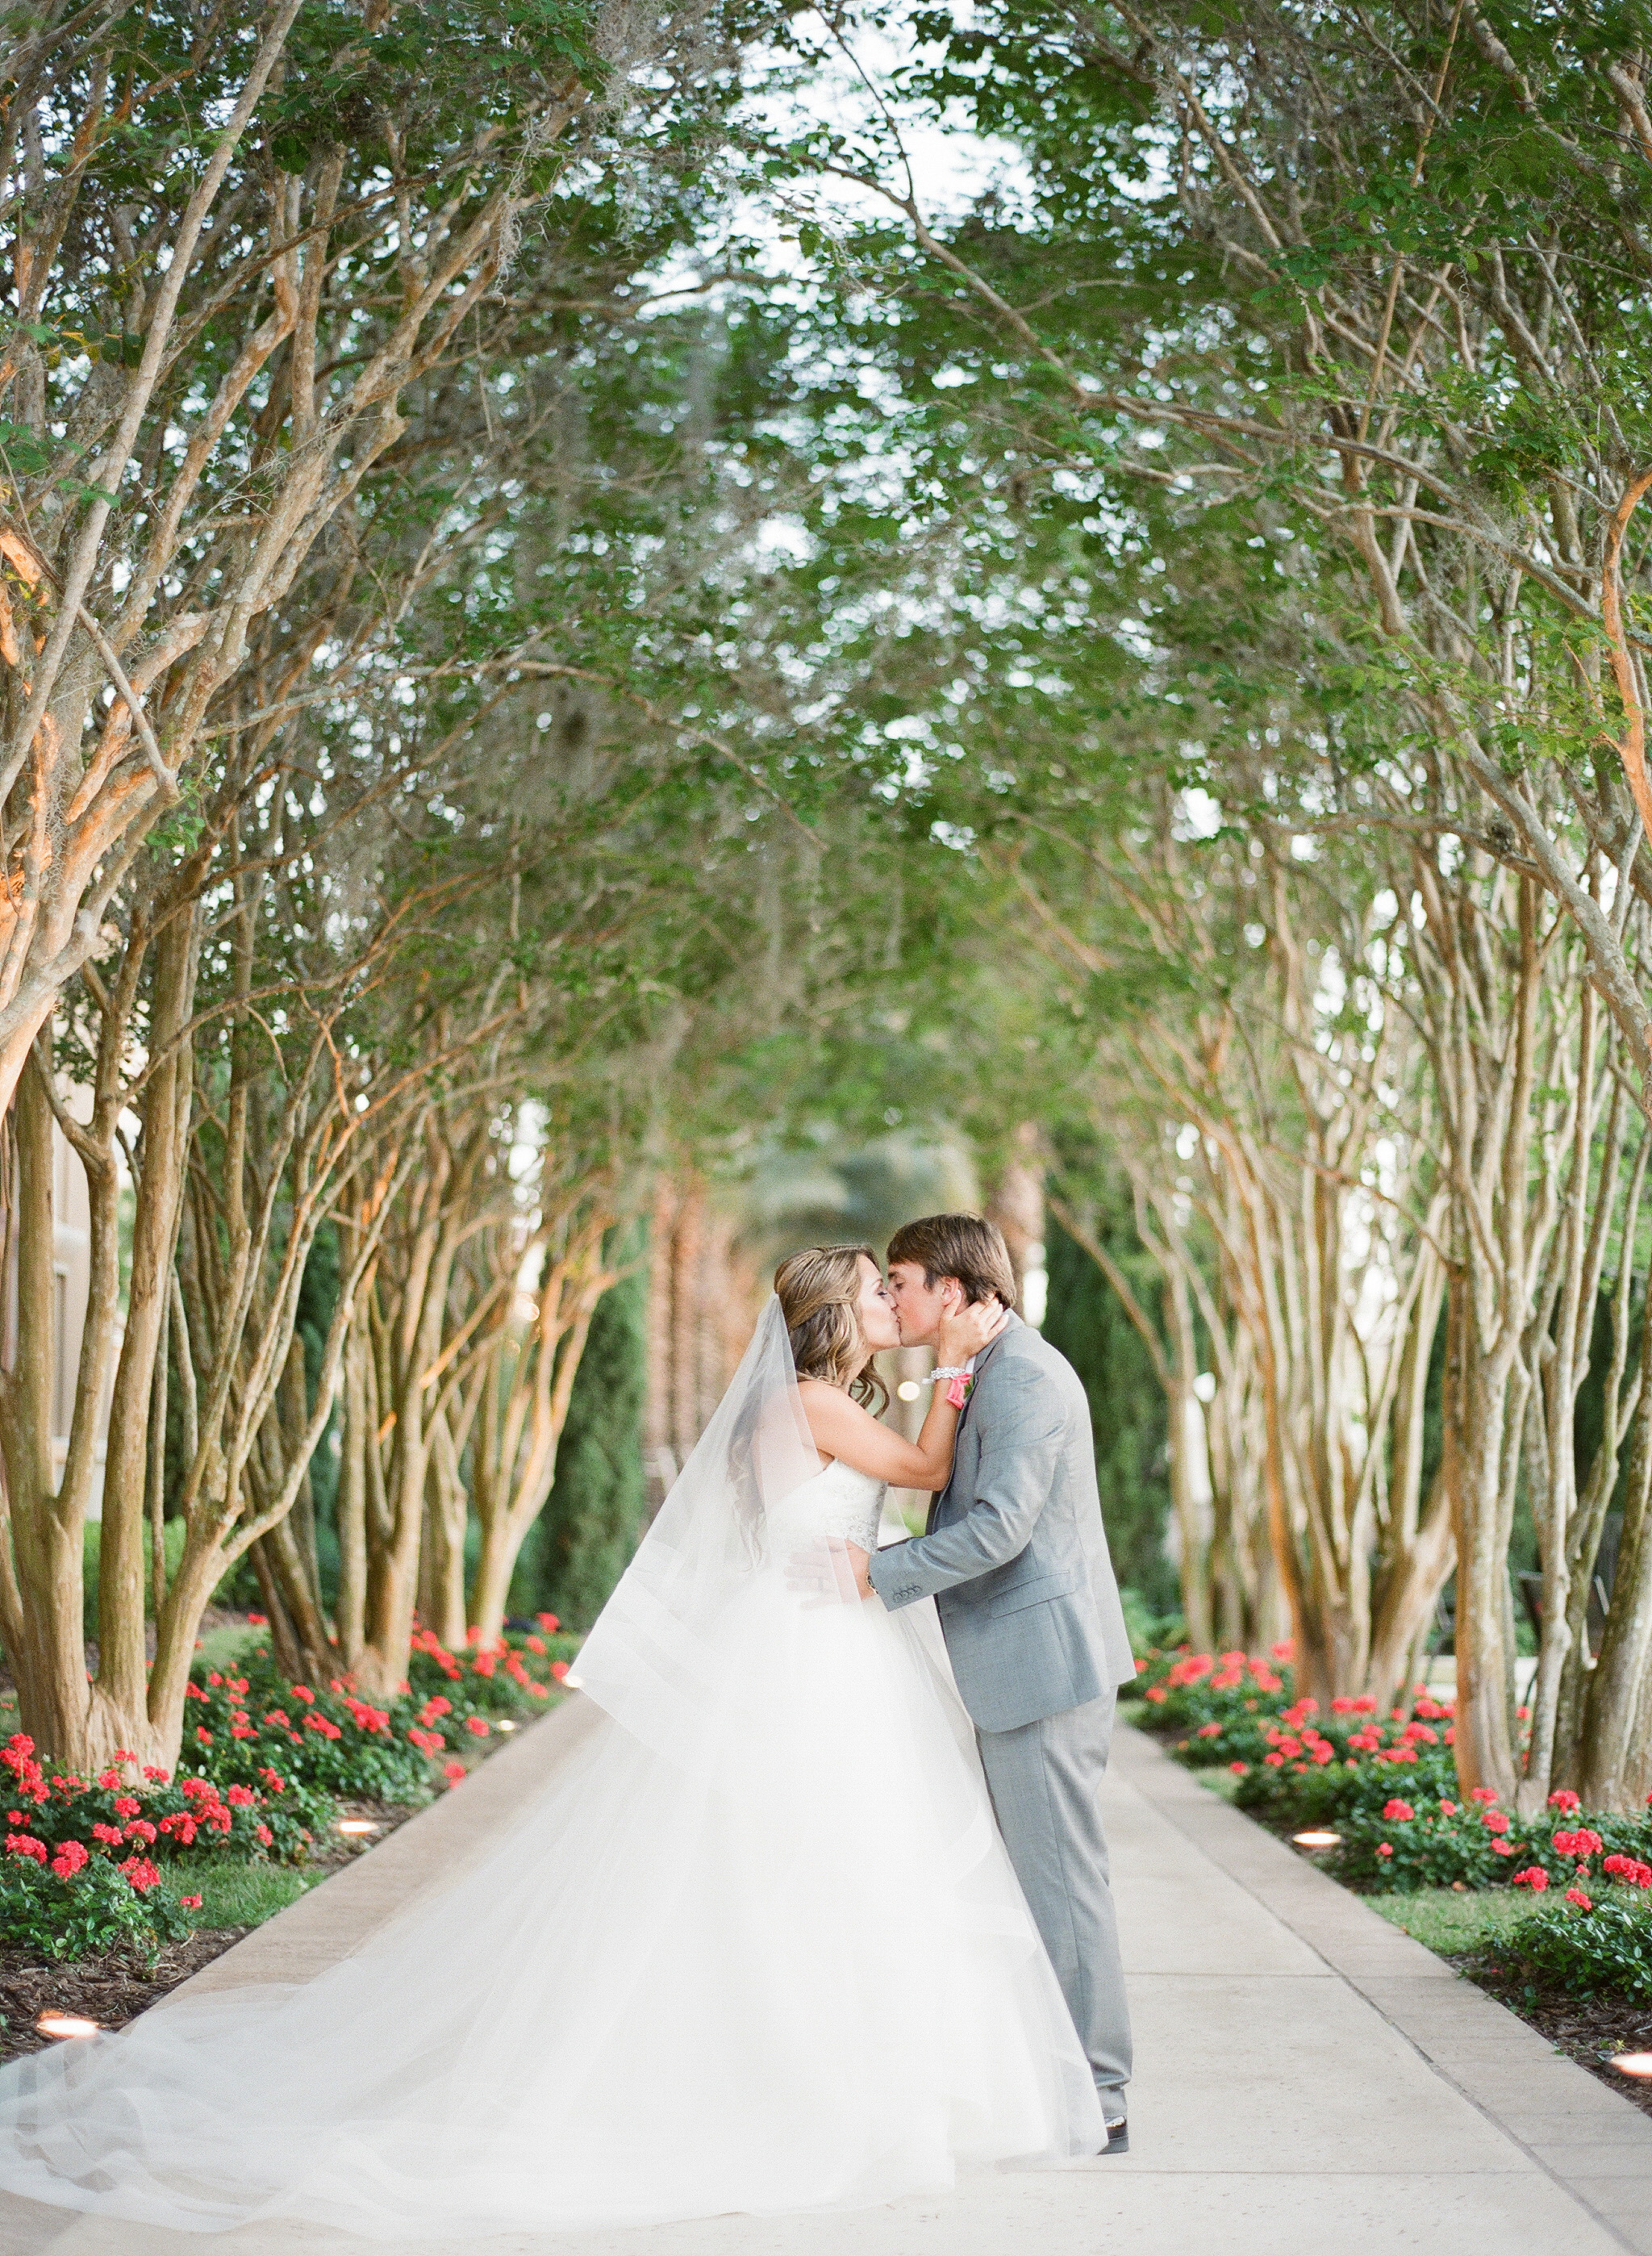 Where to Wed: 20 Florida Wedding Venues That Dazzle - Four Seasons Orlando at Walt Disney World Resort | Weddings Illustrated